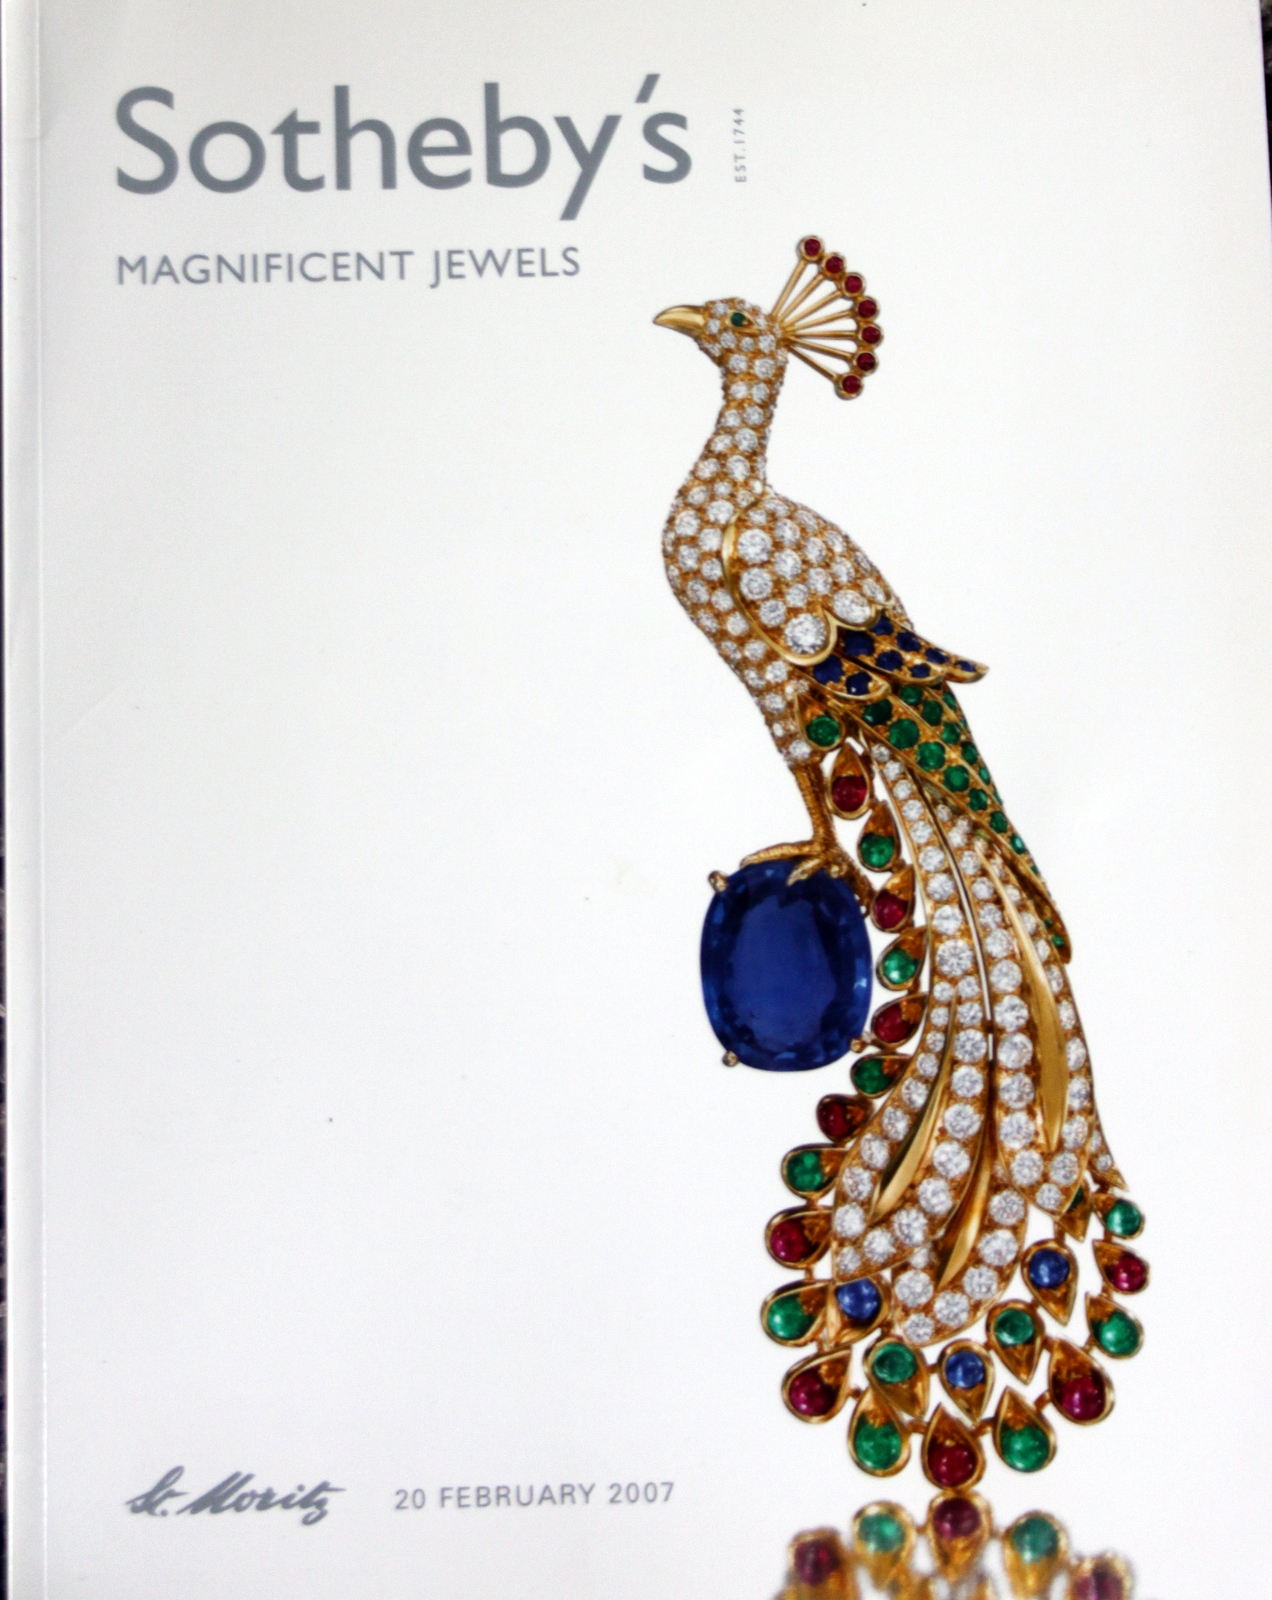 so Sotheby's MAGNIFICENT JEWELS St Moritz 2/20/97 Code ...